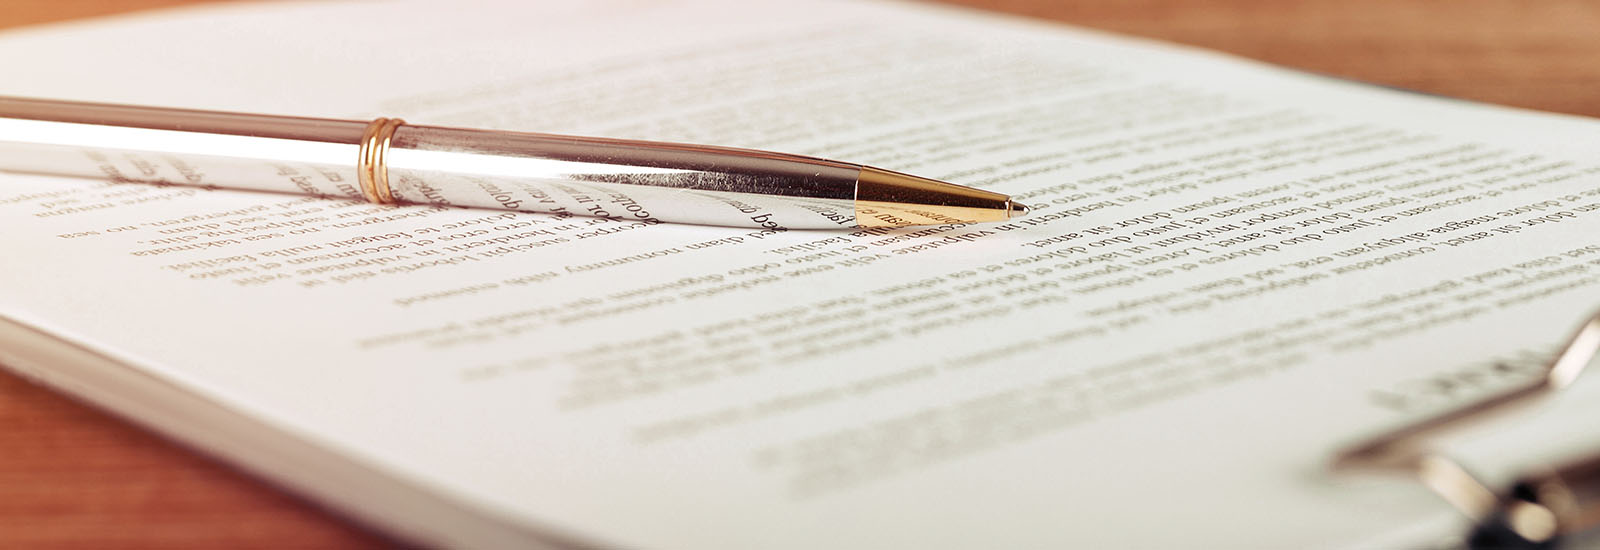 Pen lying on a contract or application form, wide angle view.